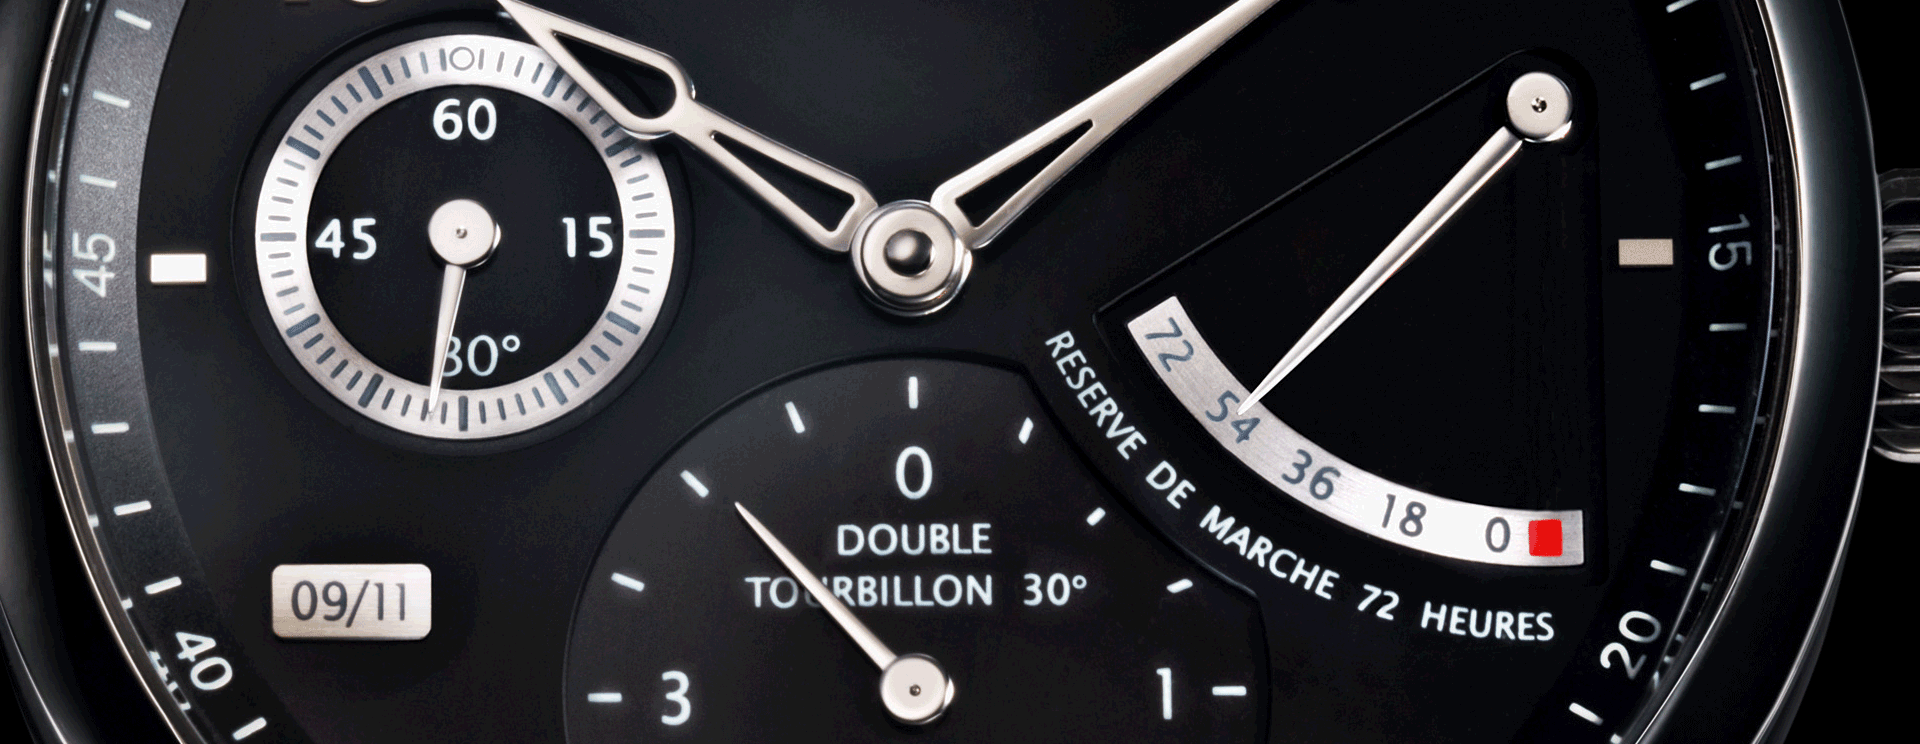 UNIQUE DOUBLE TOURBILLON 30º  SECRET